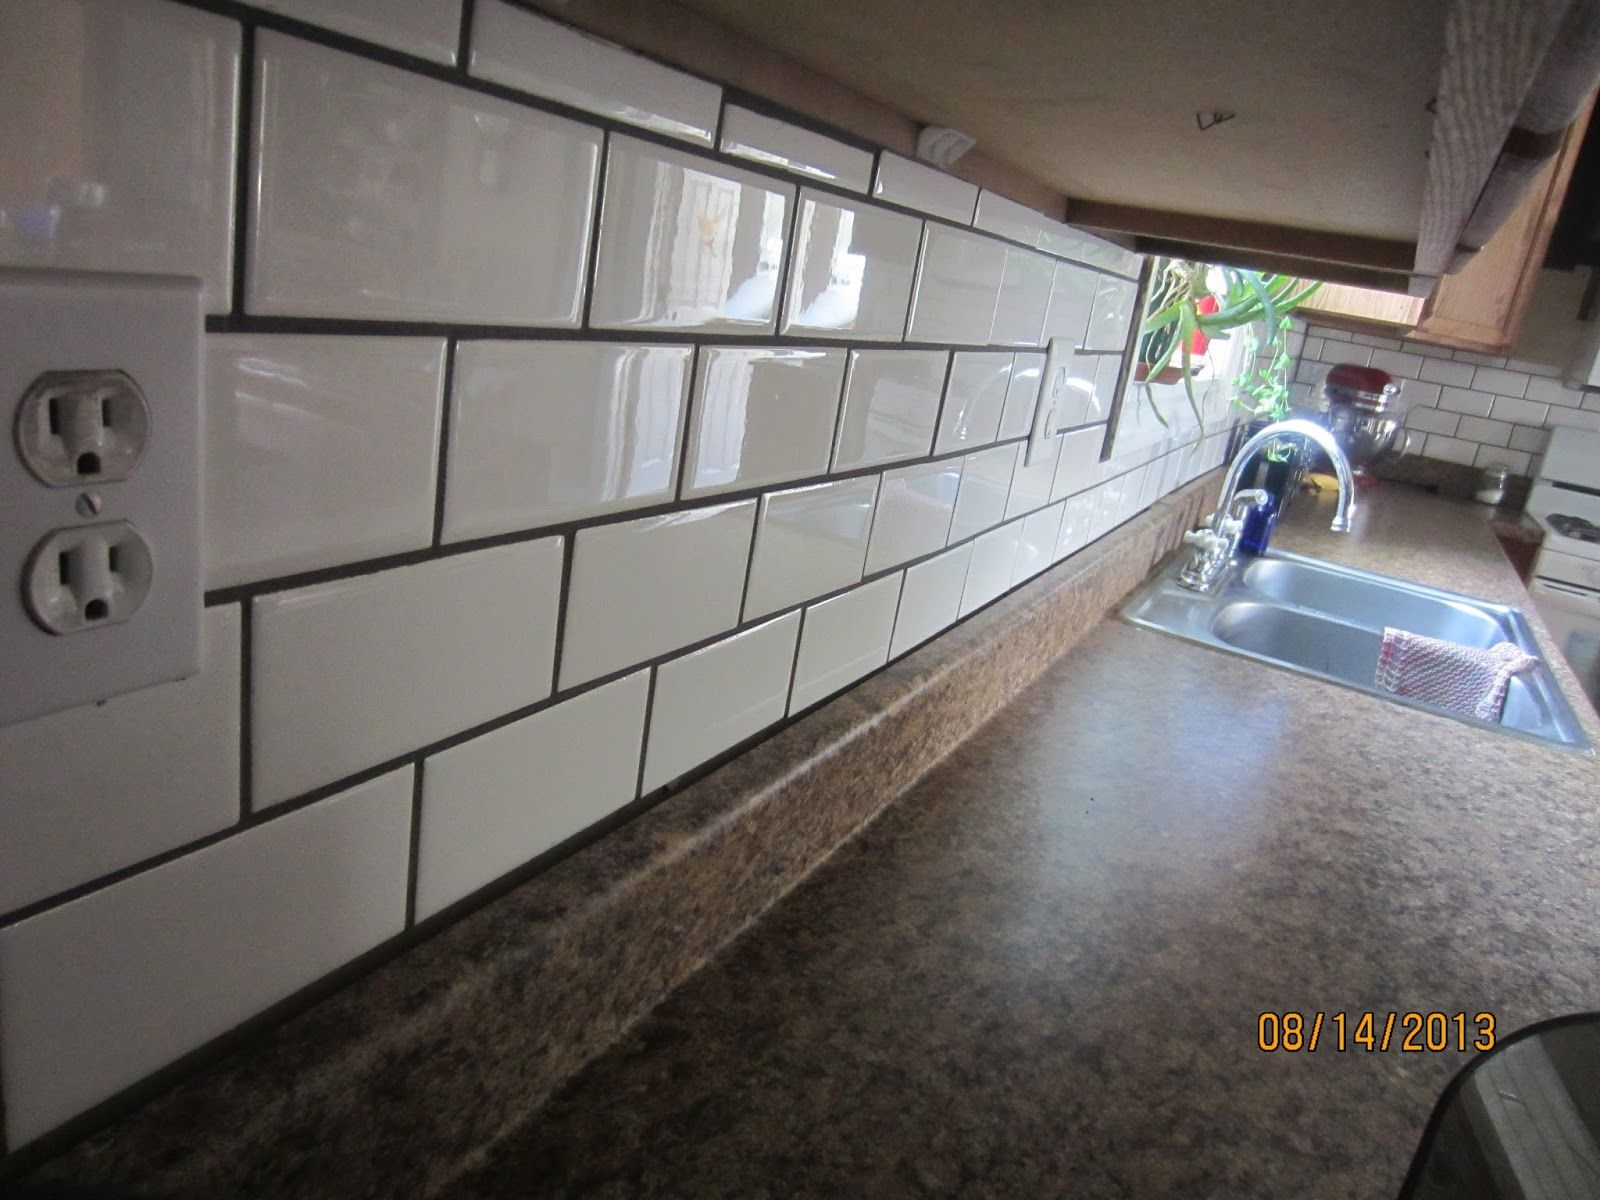 White Subway Tile Backsplash With Dark Grout